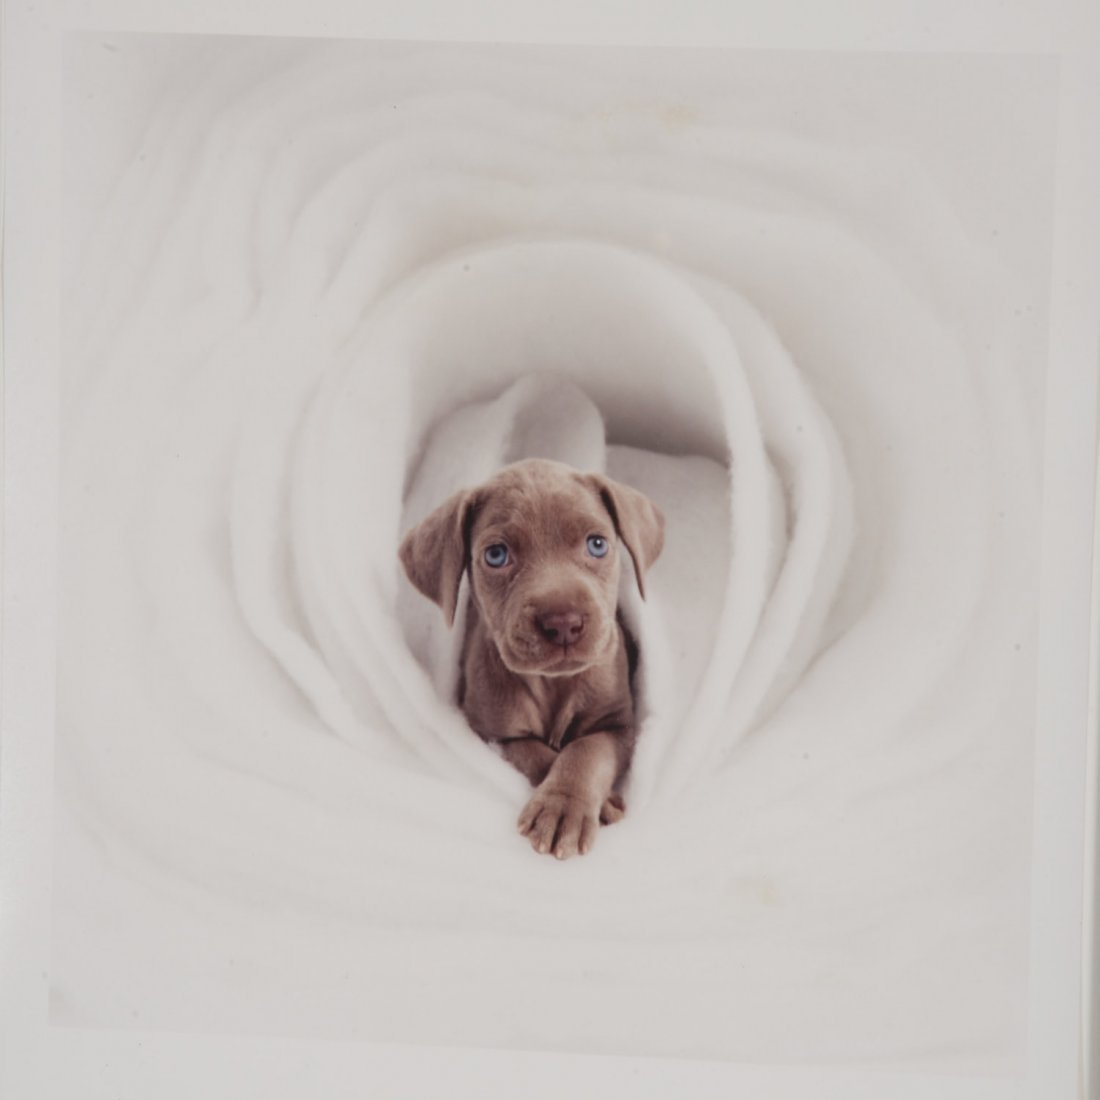 William Wegman, photograph - 2